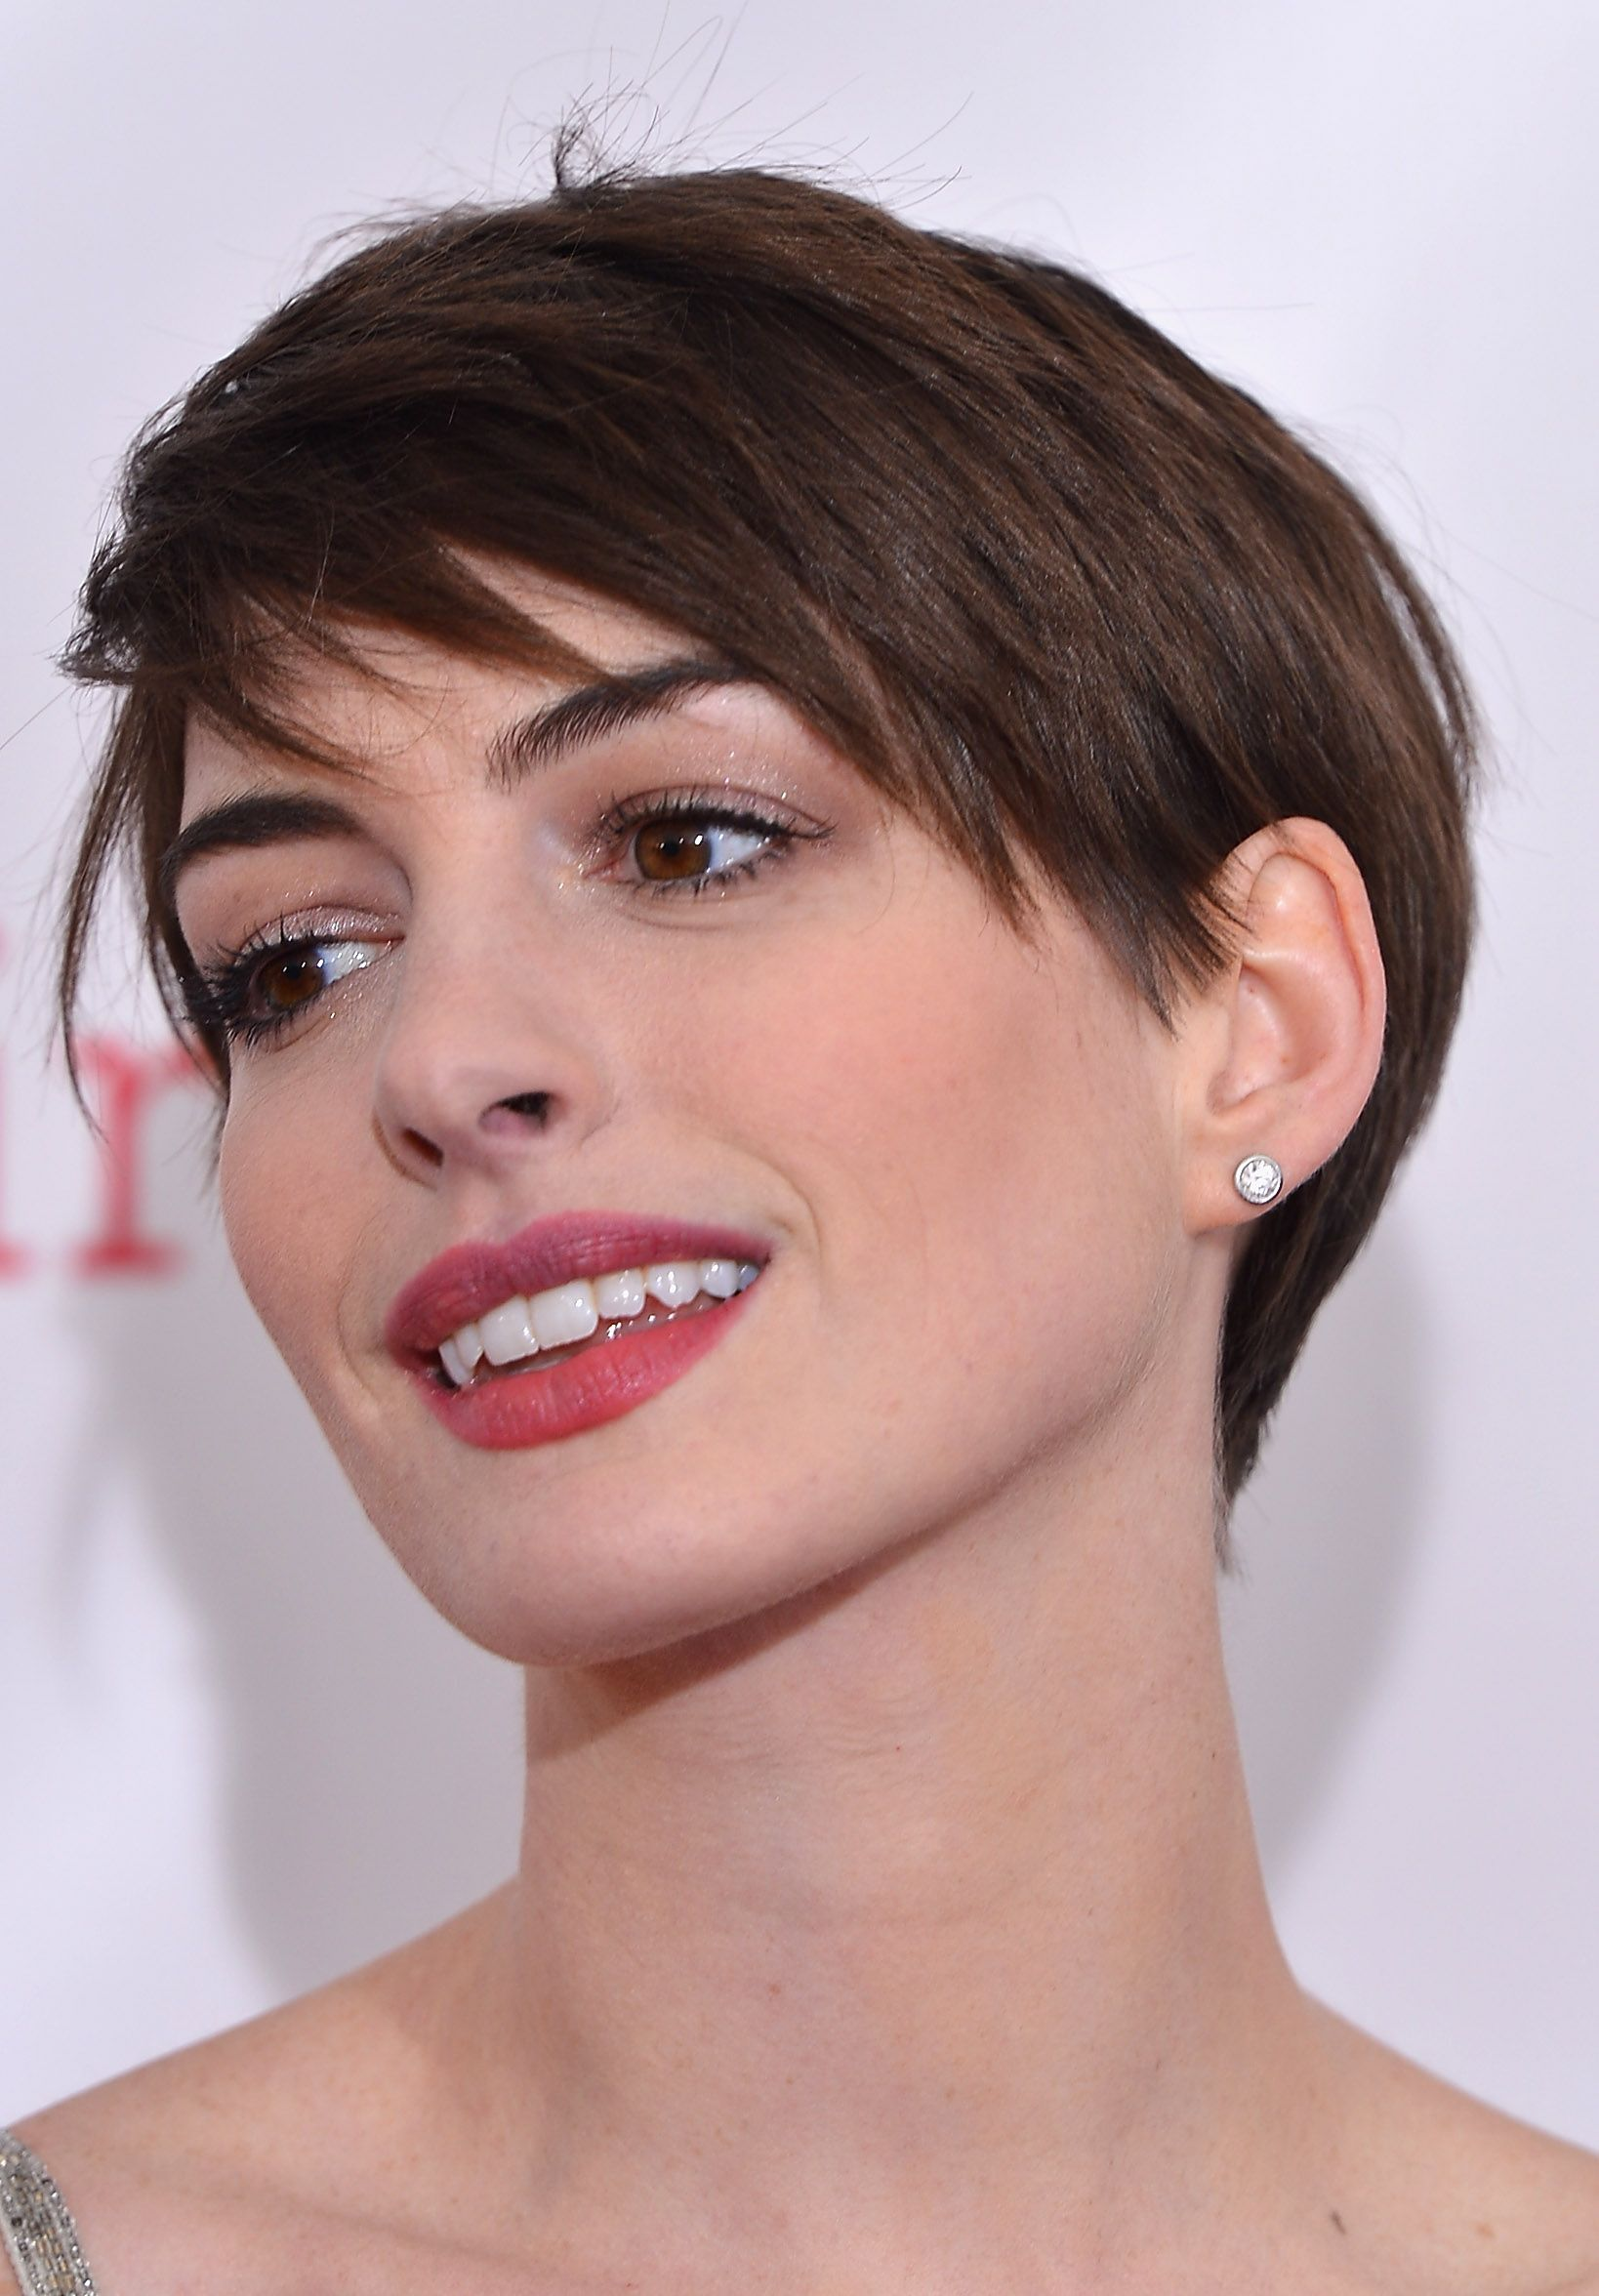 anne hathaway | hair obsession | pinterest | anne hathaway